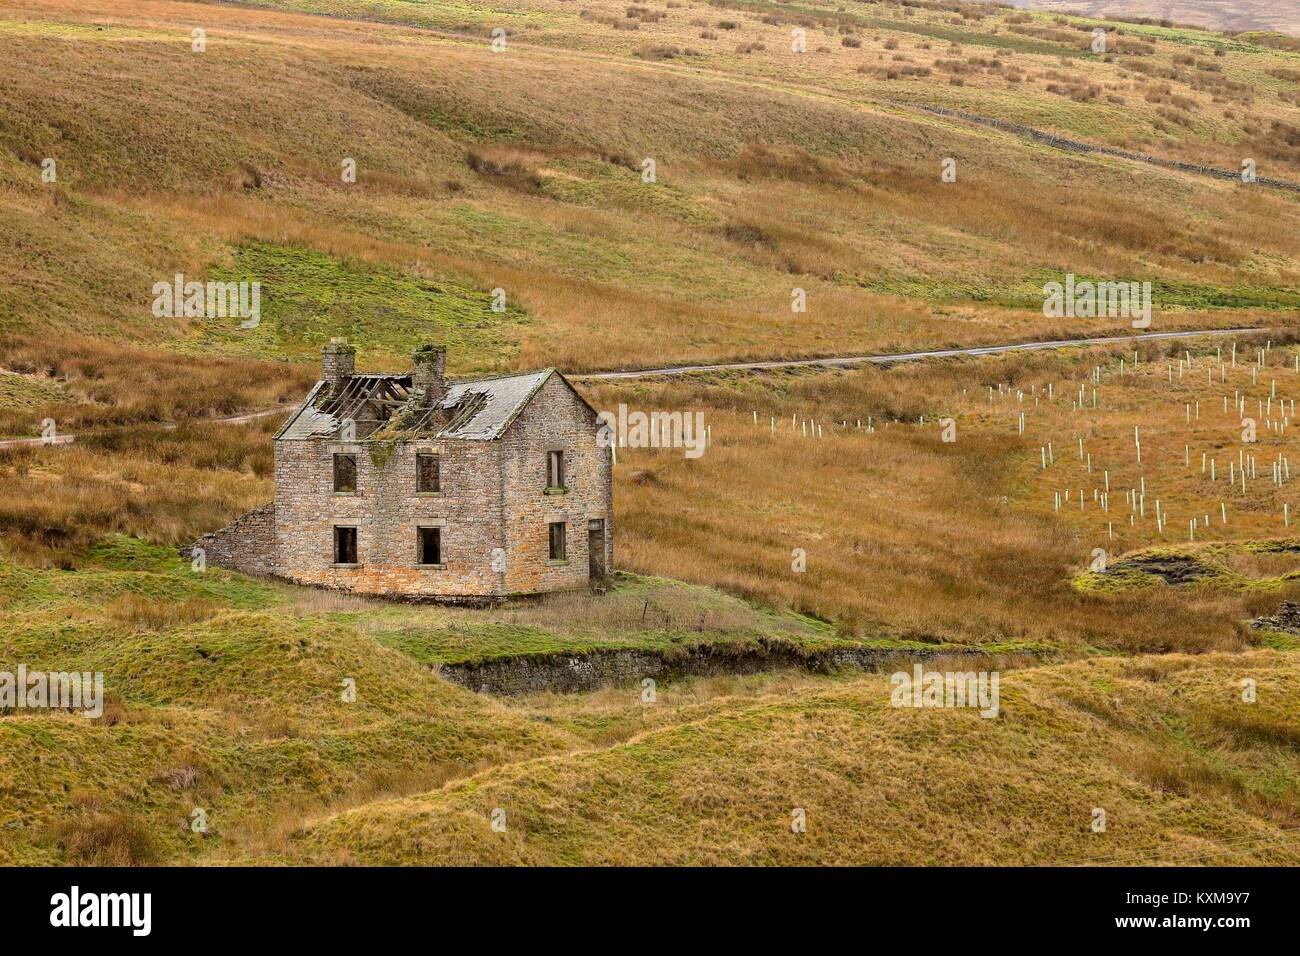 Derelict building near Grove Rake Mine buildings, Rookhope District, Weardale, North Pennines, County Durham, England, - Stock Image